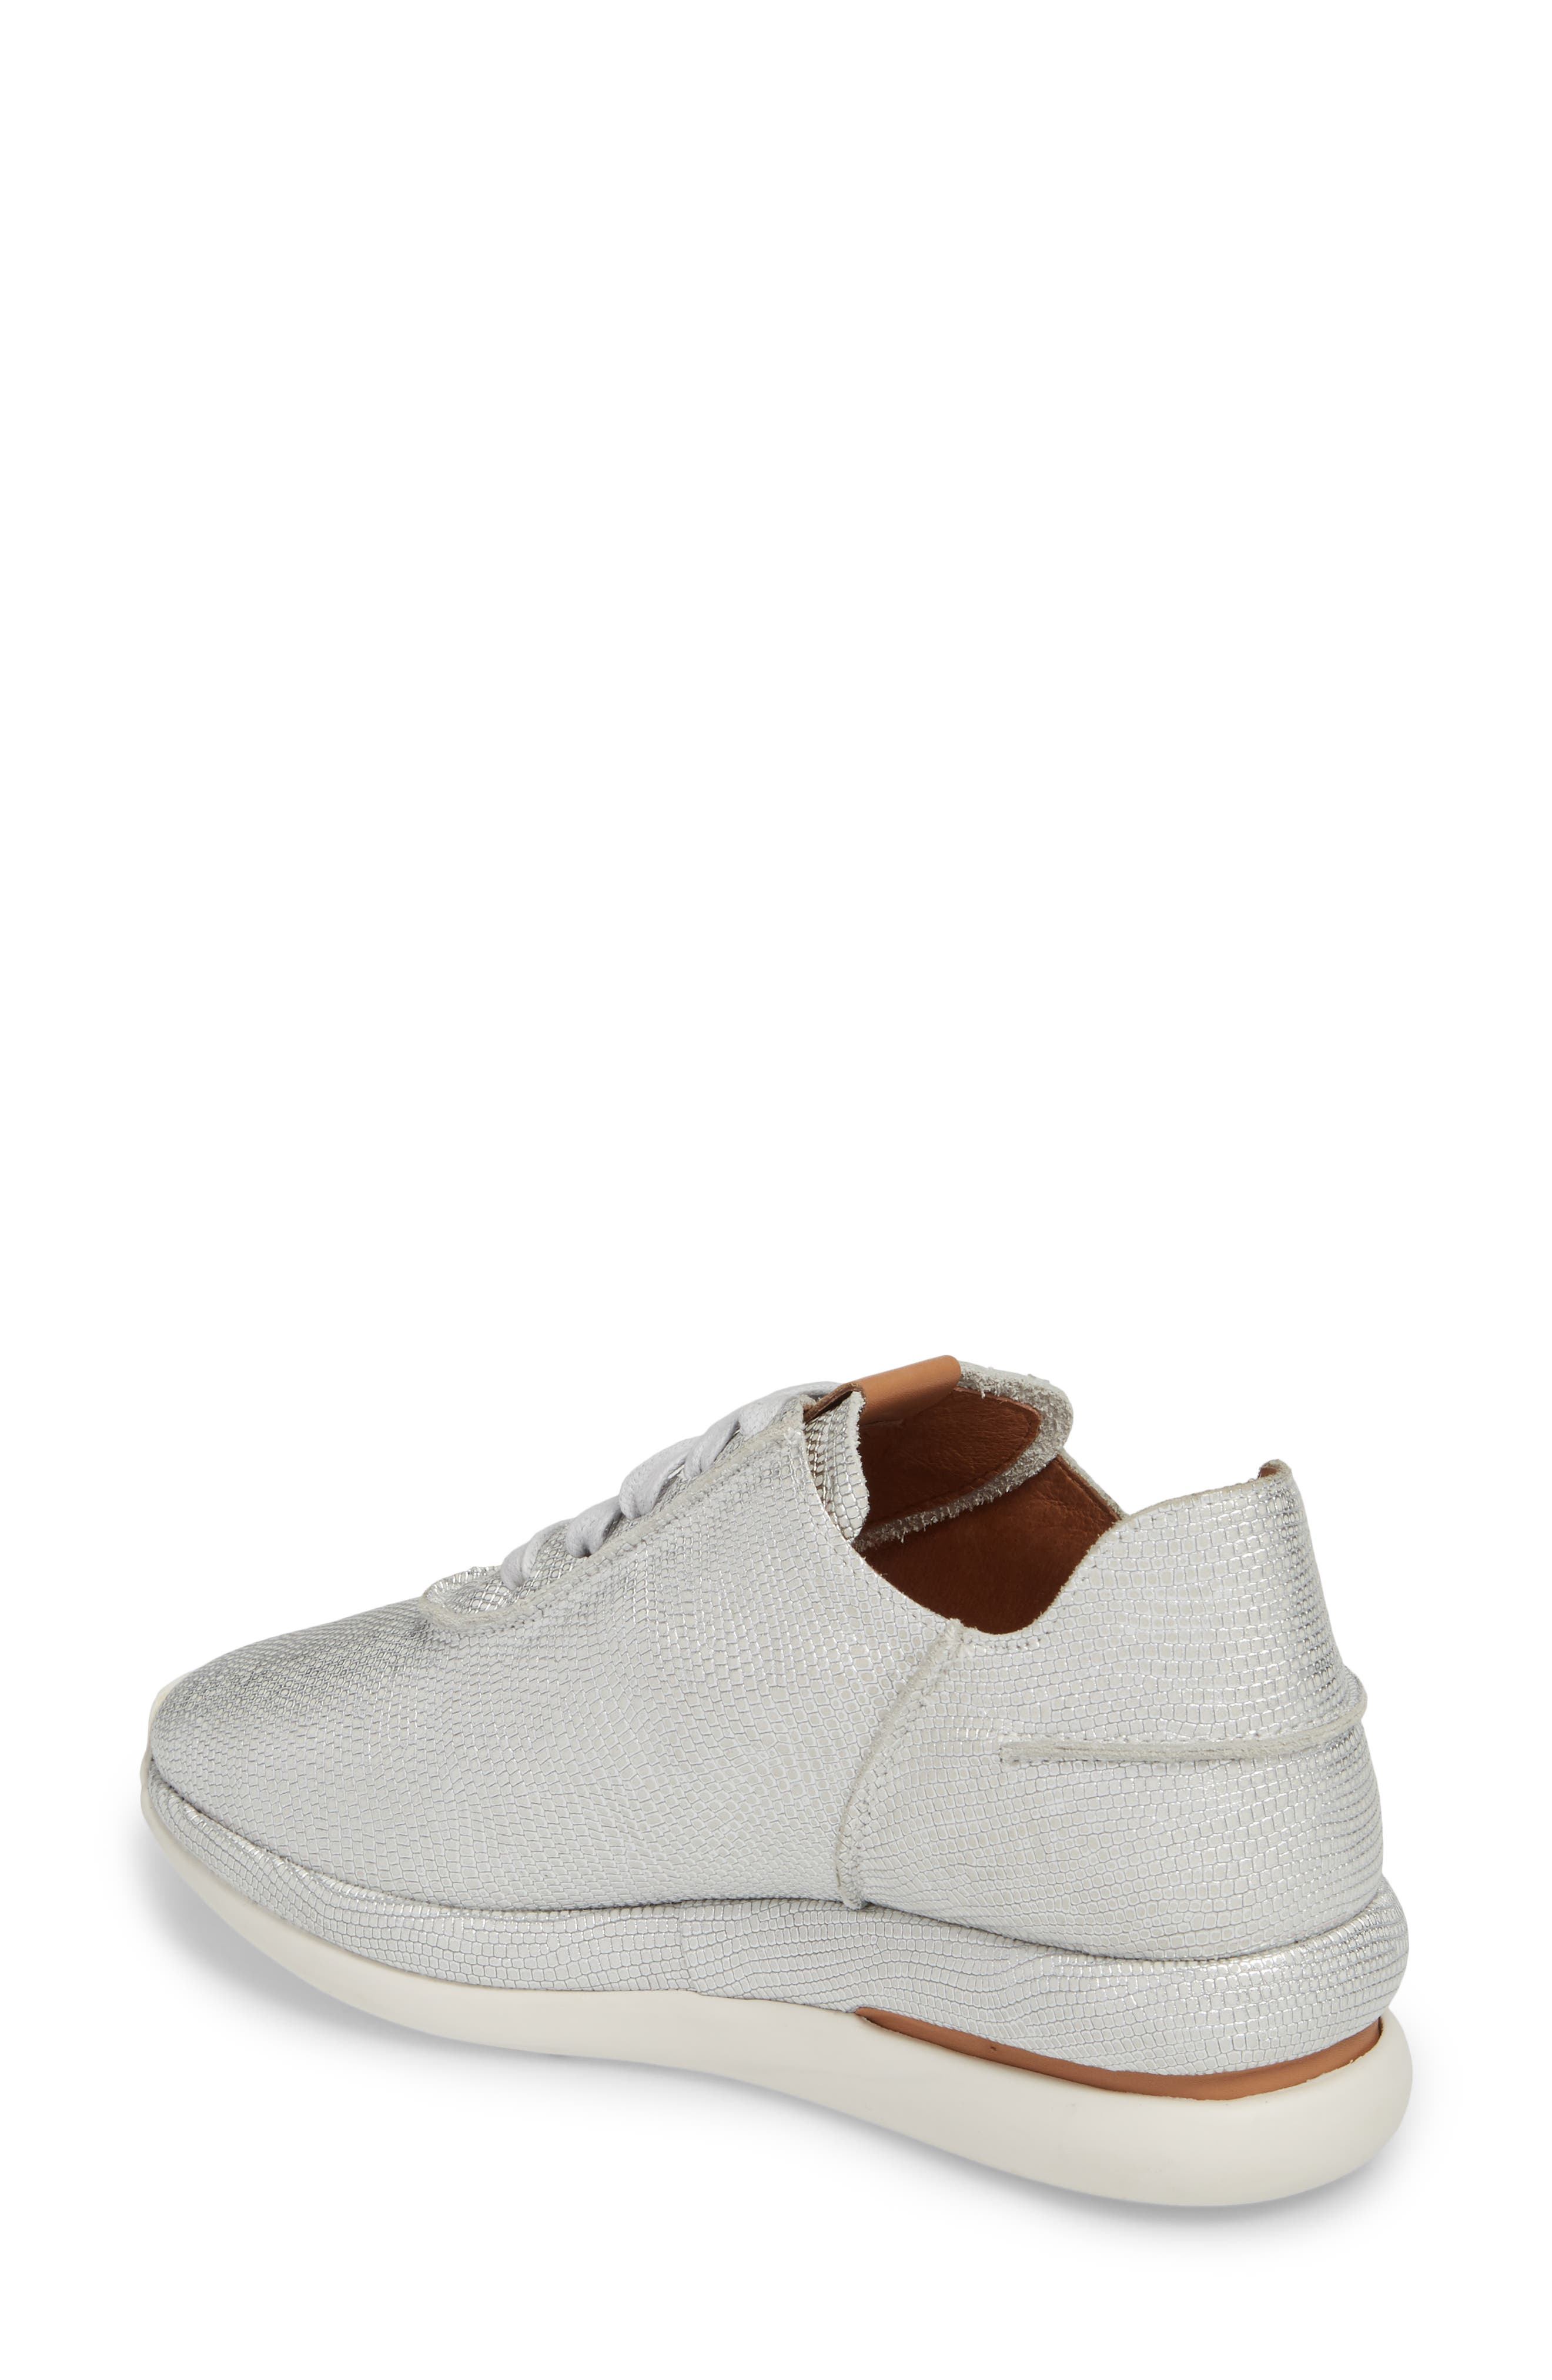 GENTLE SOULS BY KENNETH COLE, Raina Sneaker, Alternate thumbnail 2, color, WHITE/ SILVER LEATHER